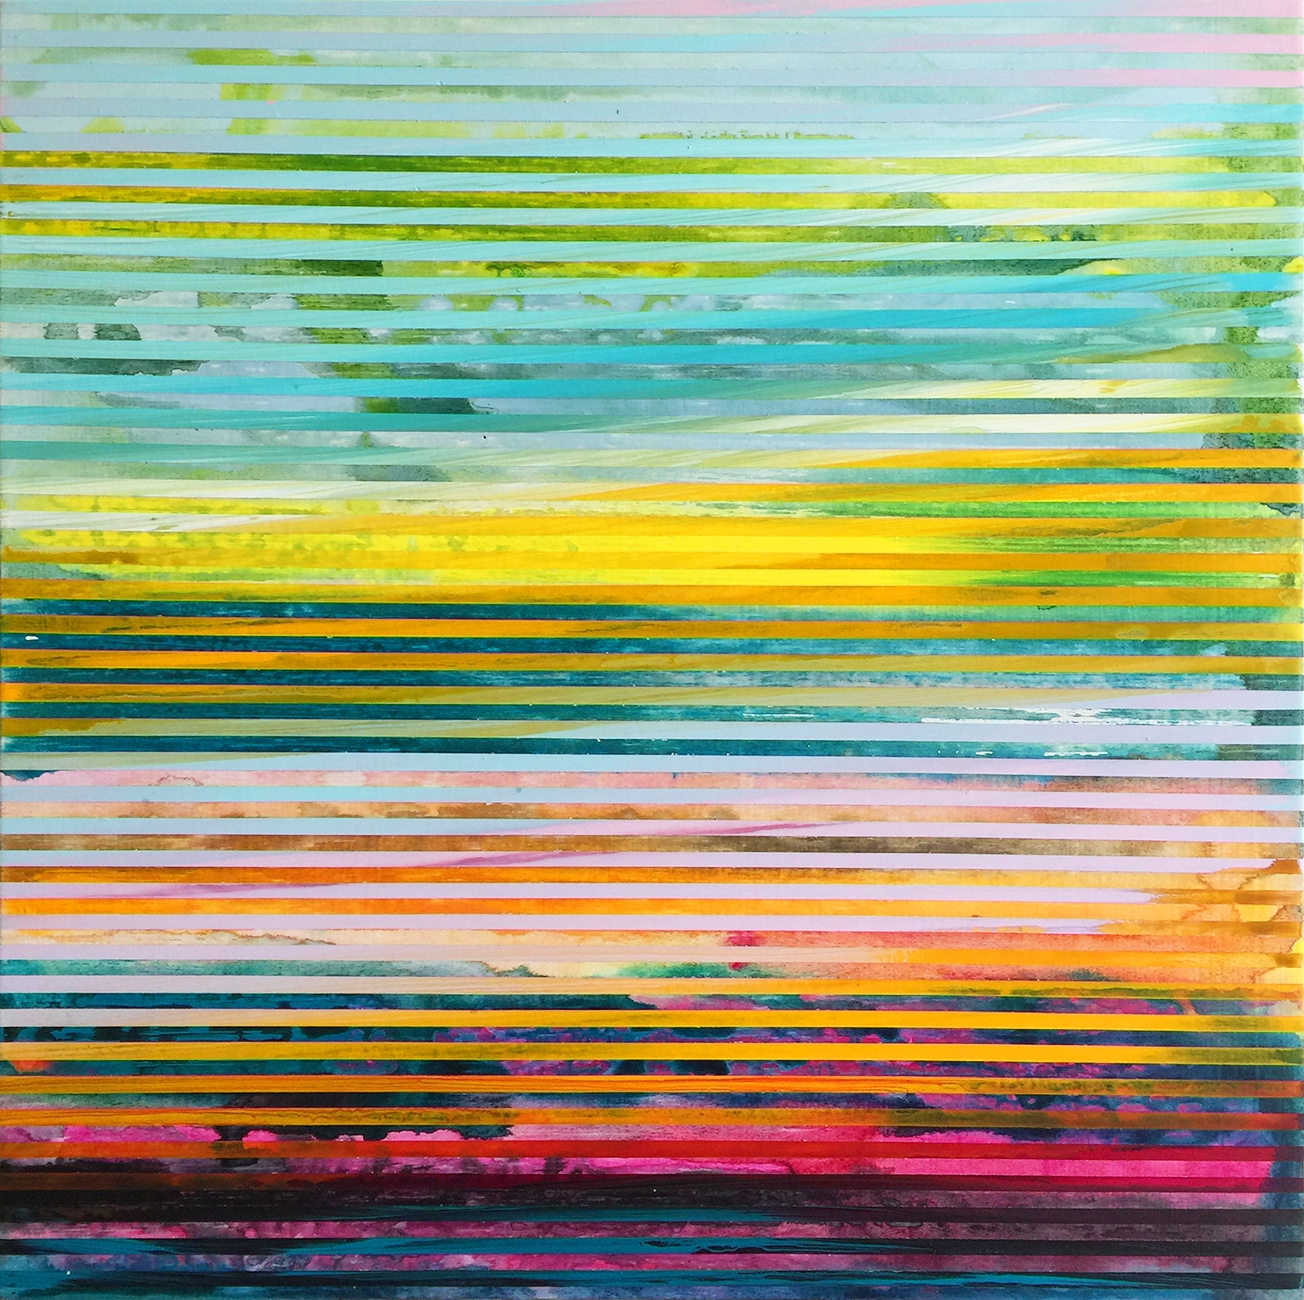 Weaving Landscape (Square) 4 by Shawn Skeir